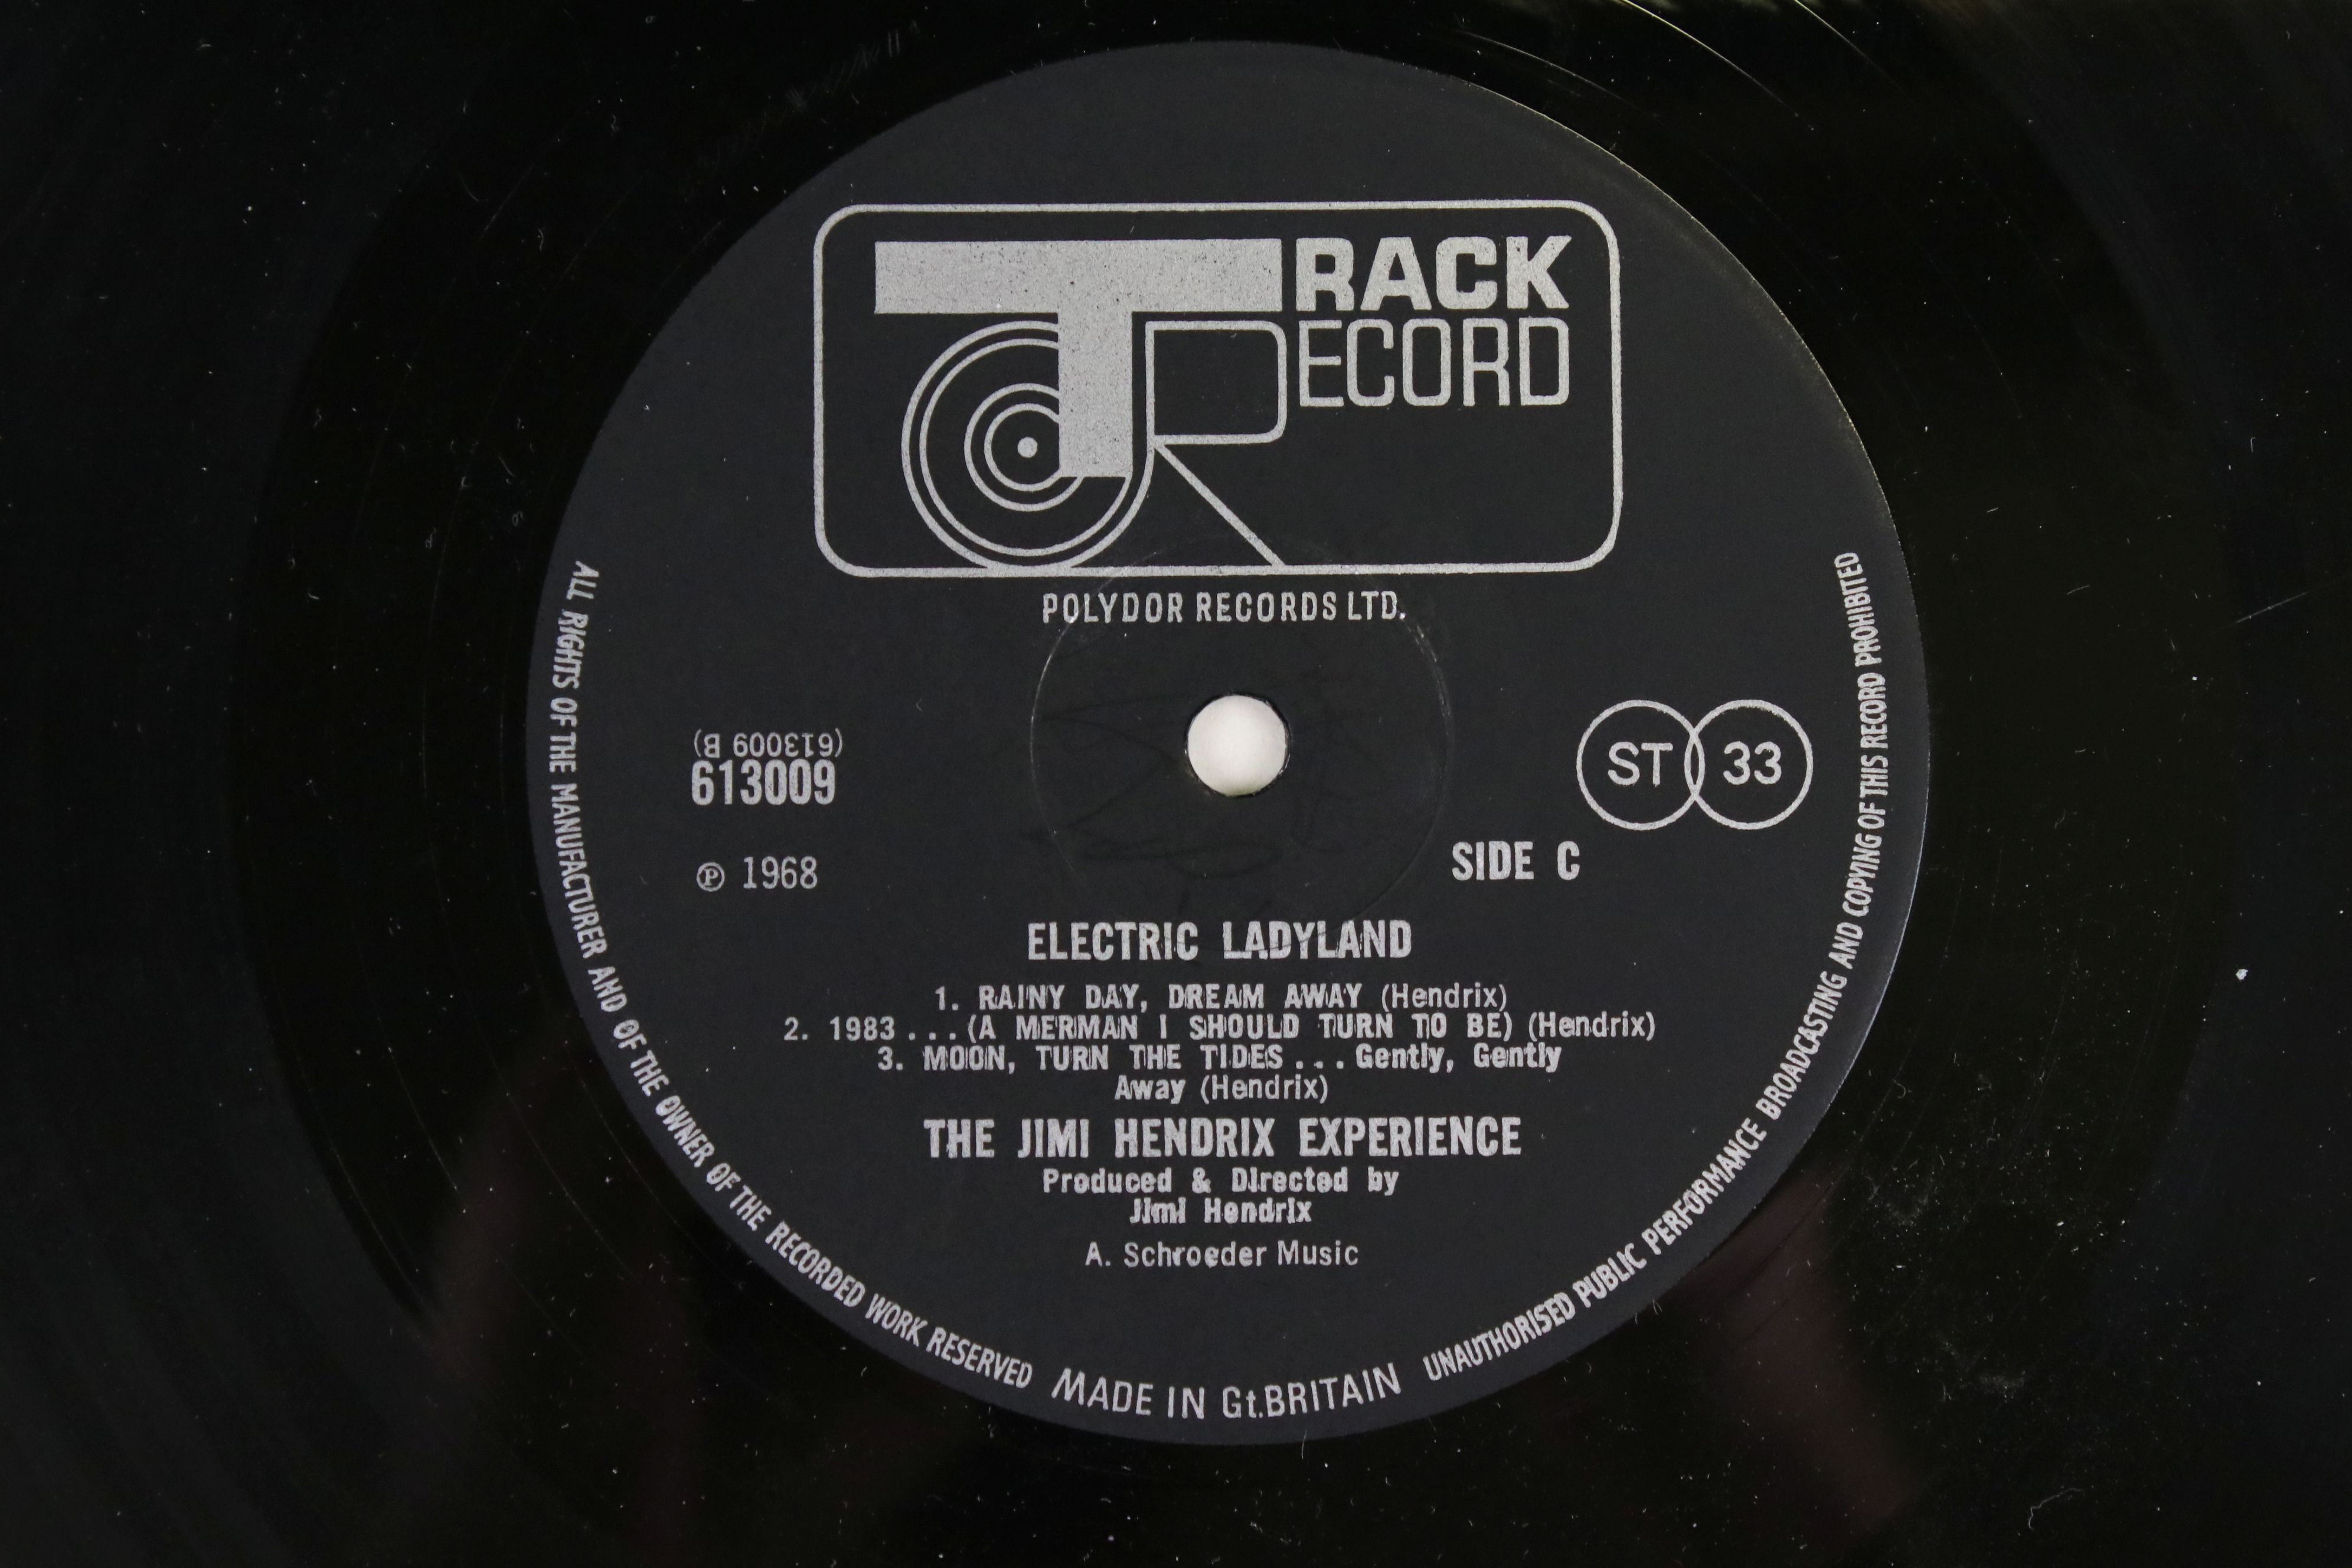 Vinyl - Jimi Hendrix Electric Ladyland on Track 61300819 blue text, Jimi to the right when - Image 6 of 9